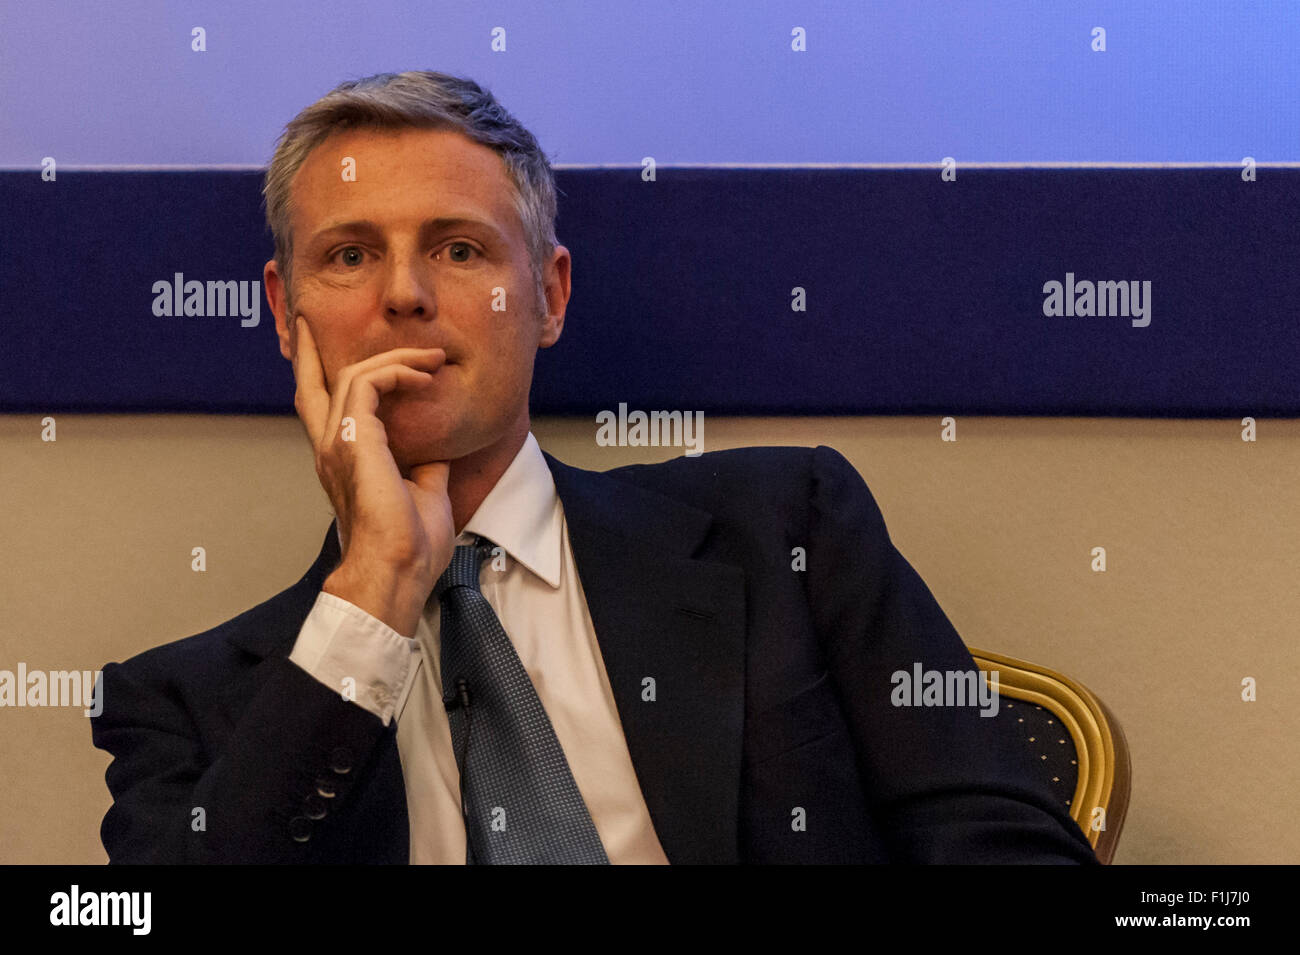 London, UK.  2 September 2015.  Zac Goldsmith looks on as Centre for London and Prospect Magazine host a major hustings - Stock Image